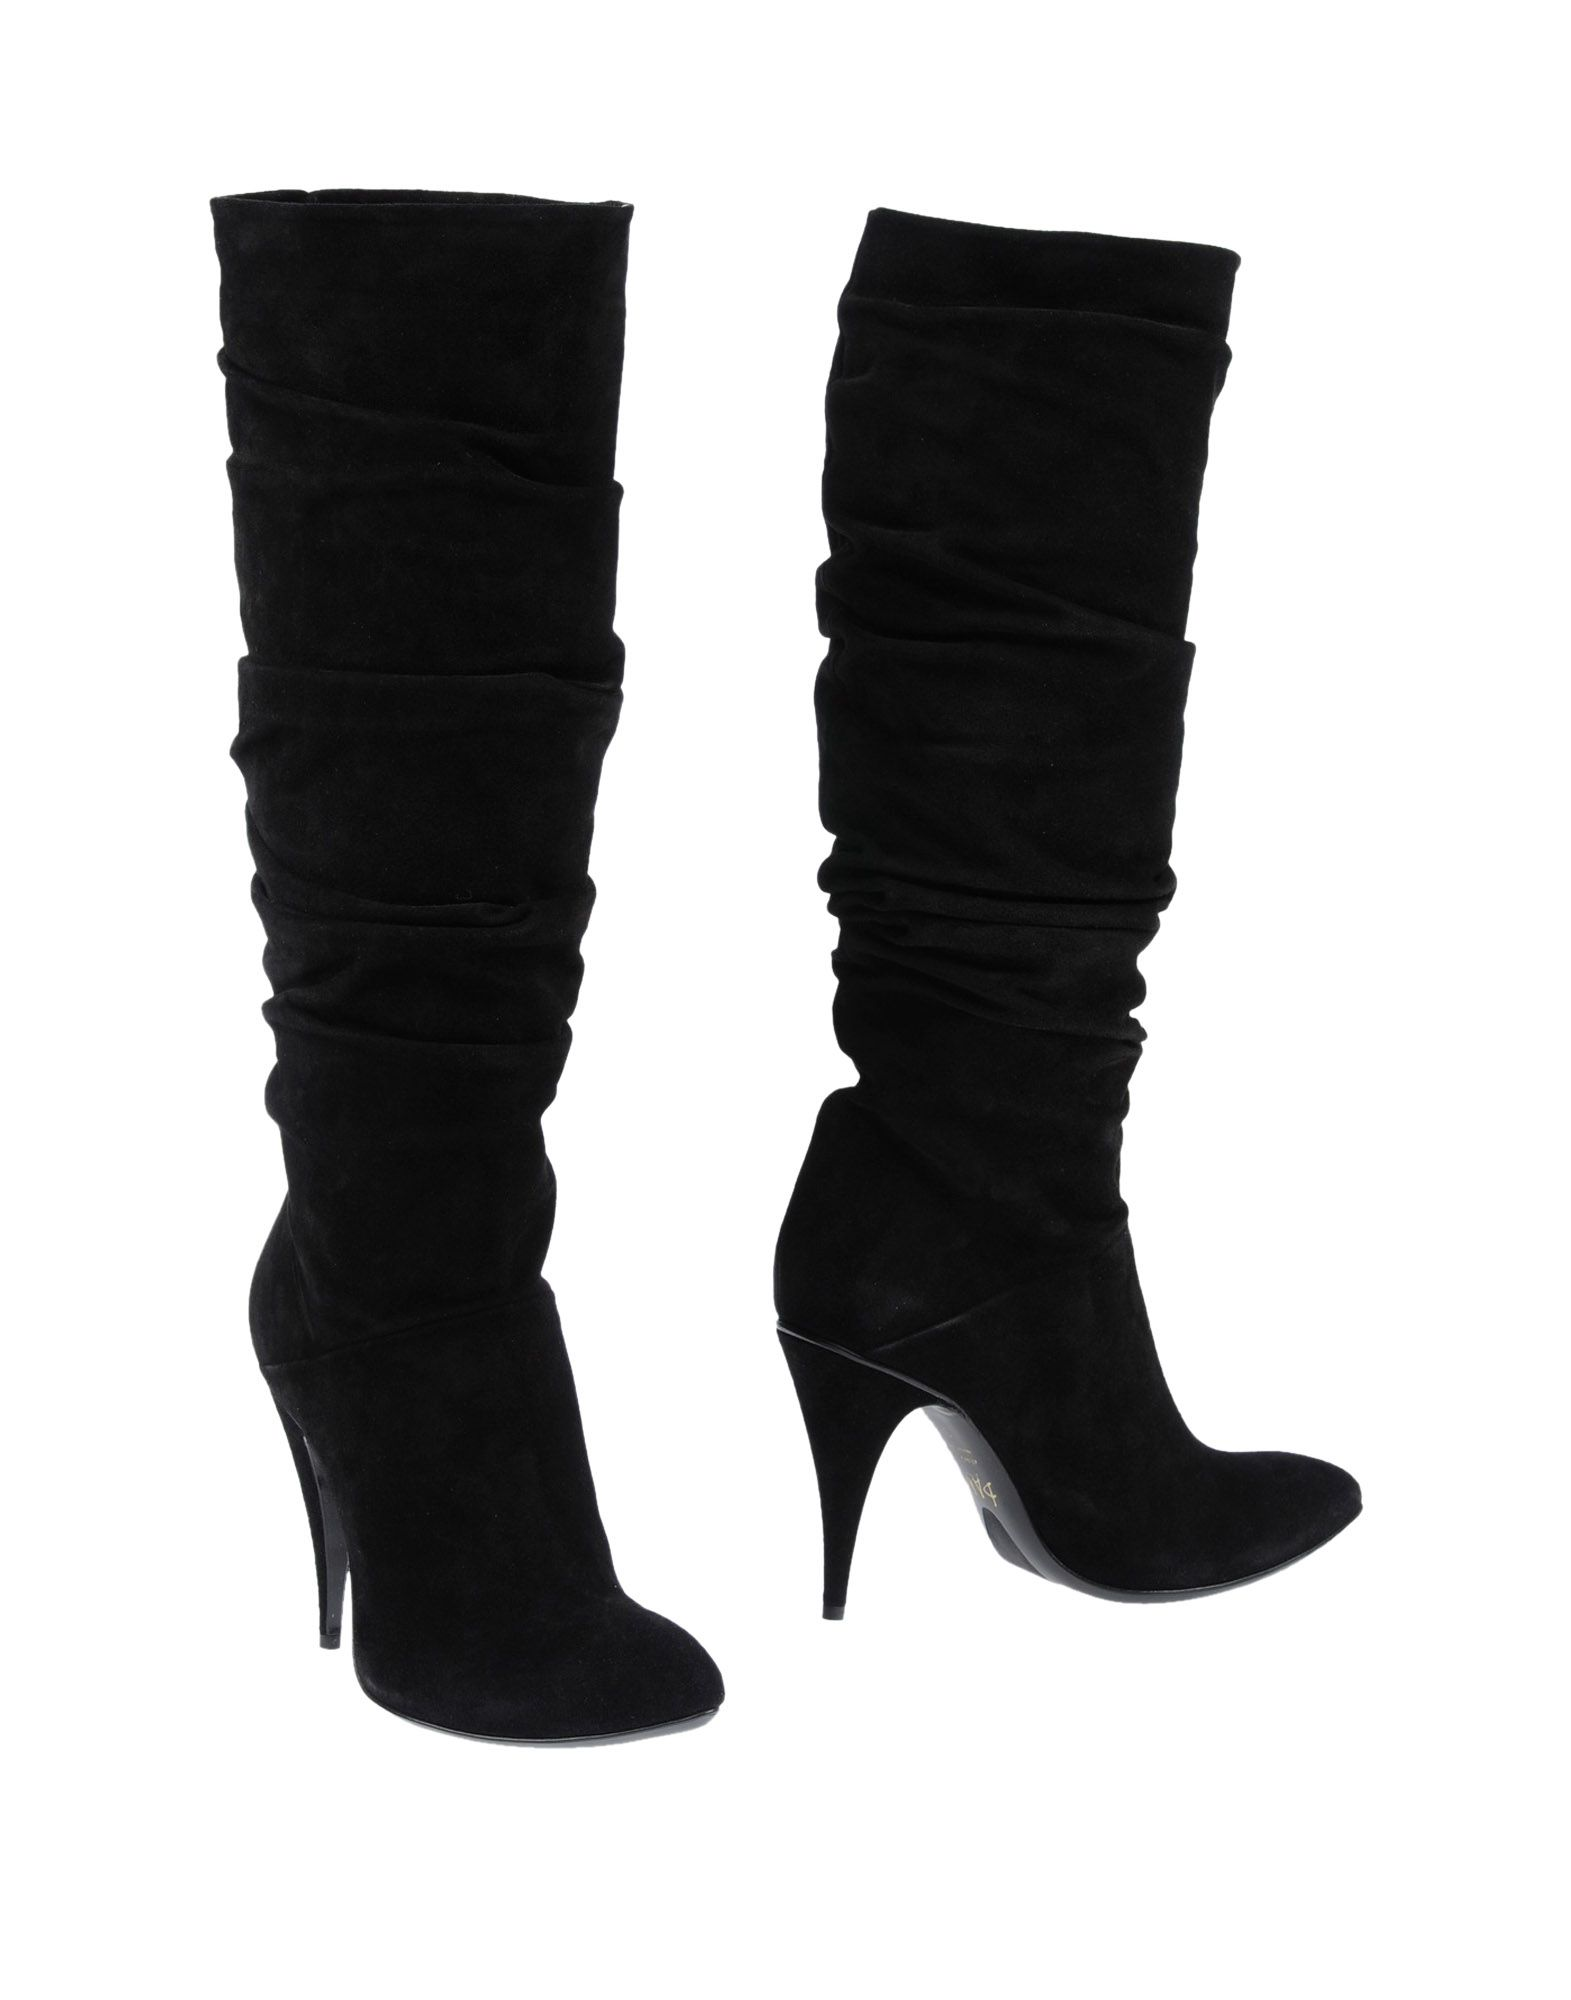 DAMY Boots in Black